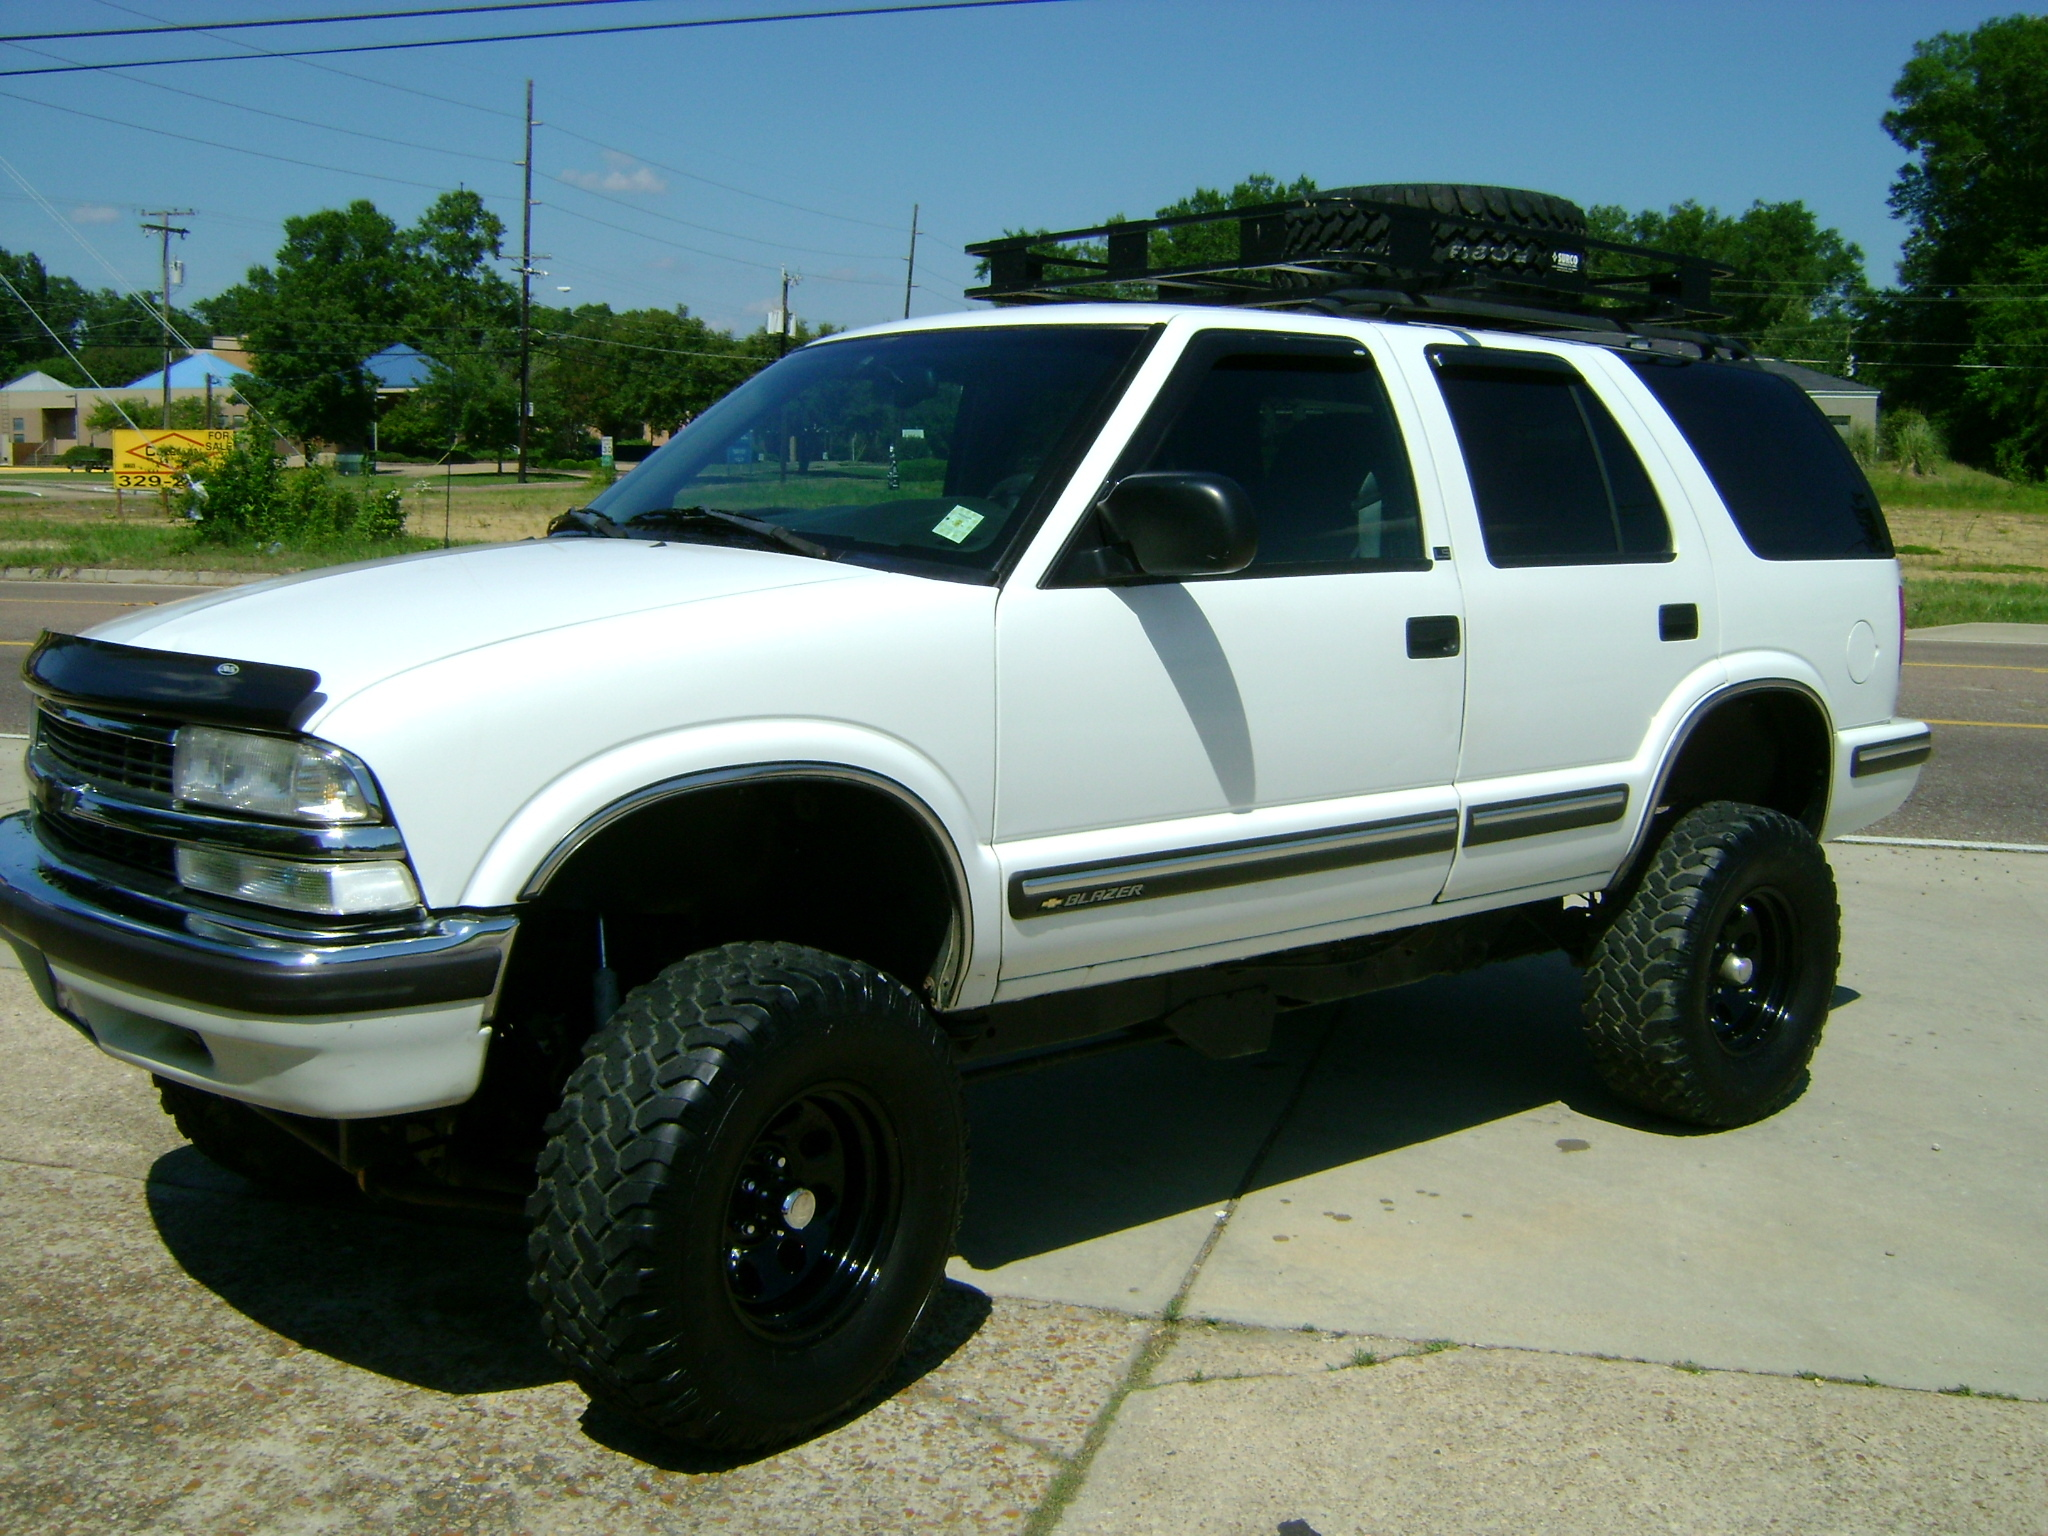 Beavis Owen 1999 Chevrolet Blazer Specs Photos Modification Info 89 Grand Am Fuse Box